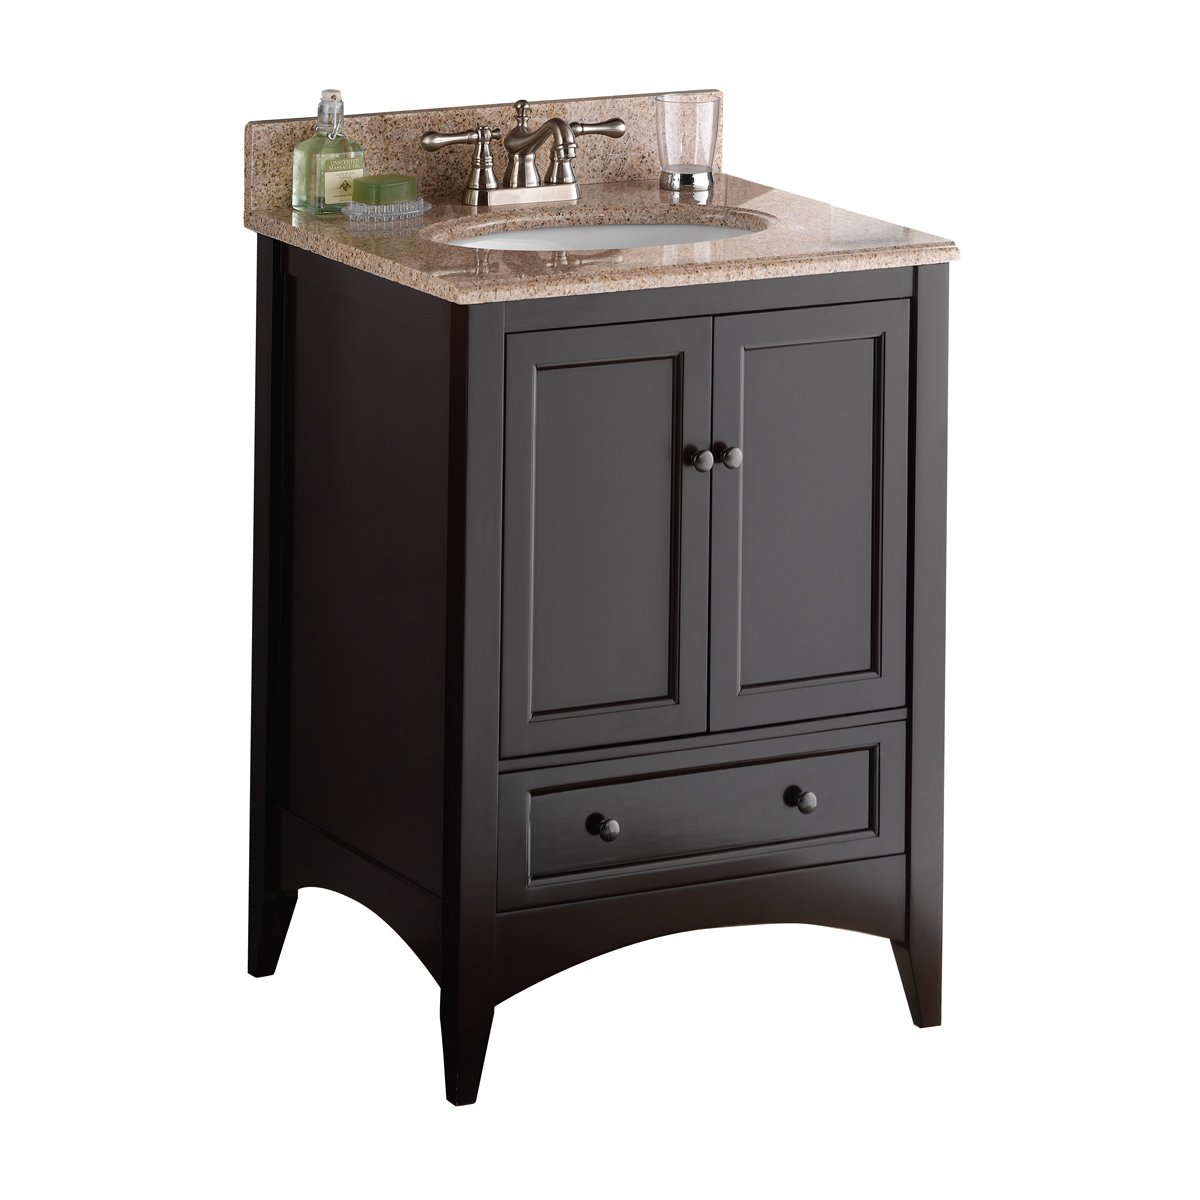 Good Foremost BECA2421D Berkshire 24 Inch Espresso Bathroom Vanity   Vanity  Sinks   Amazon.com